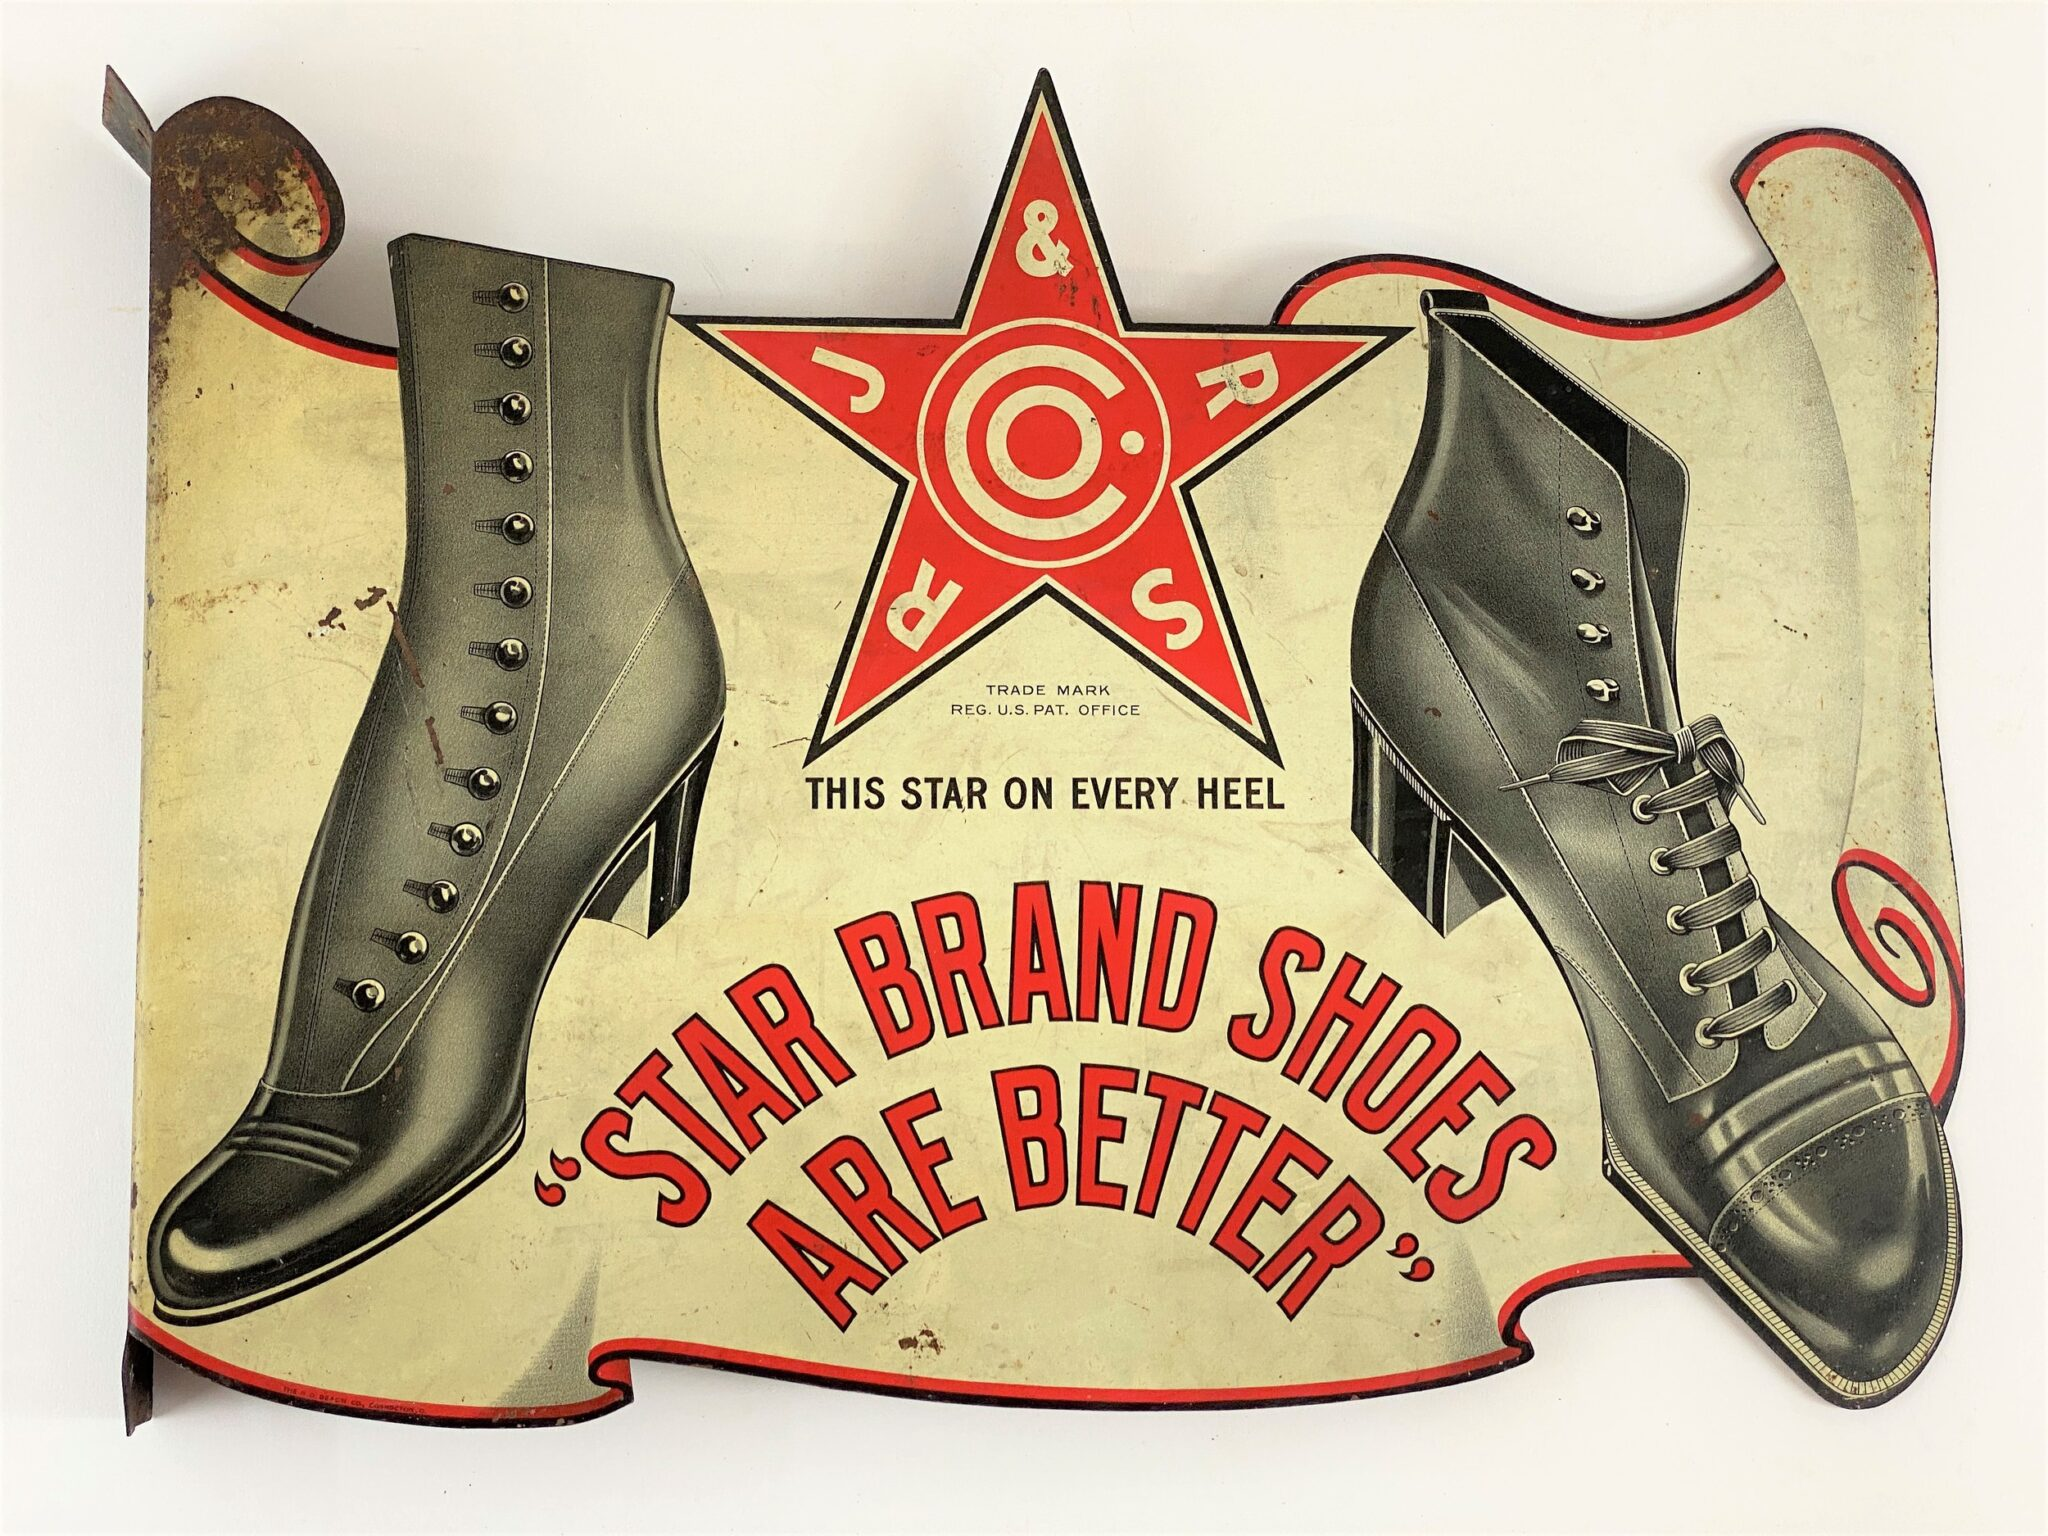 Star Brand Shoes Die Cut Flange Hanging Advertising Sign | Sold for $2,000